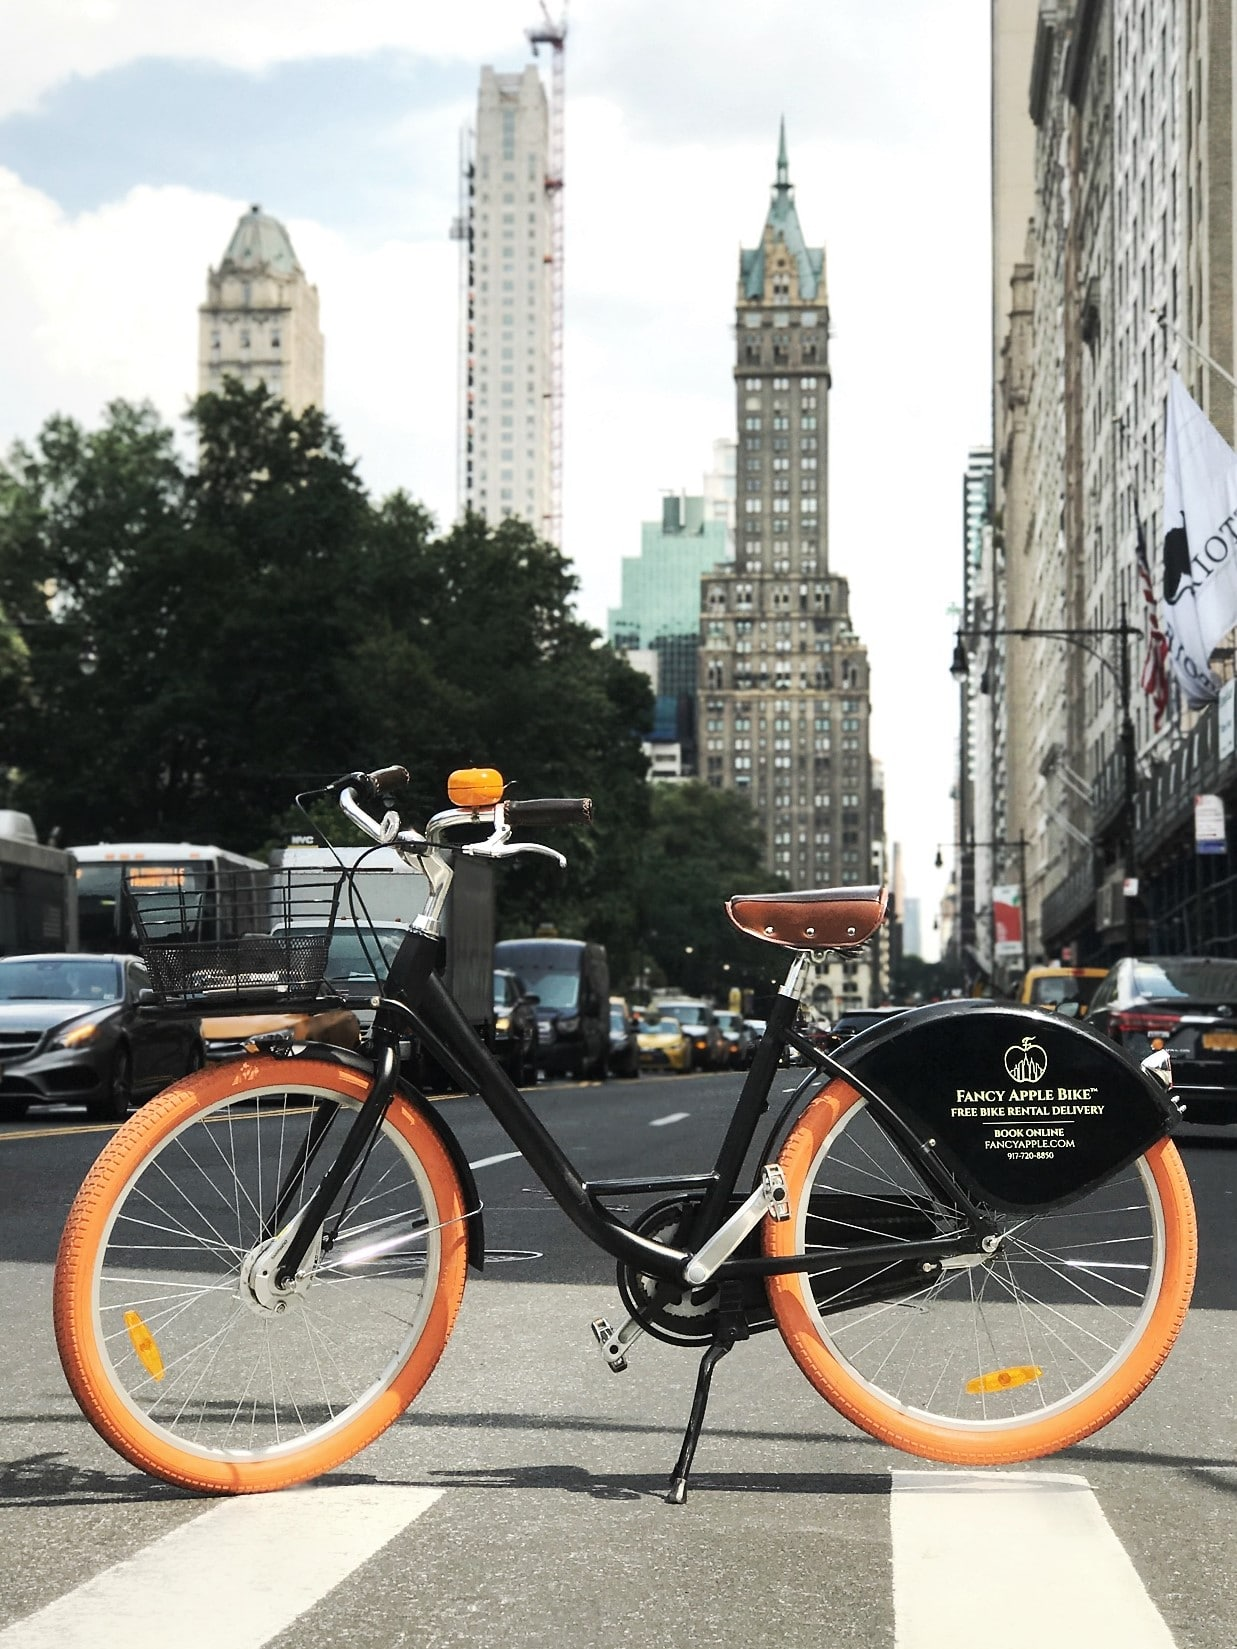 Cycling in New York date destinations